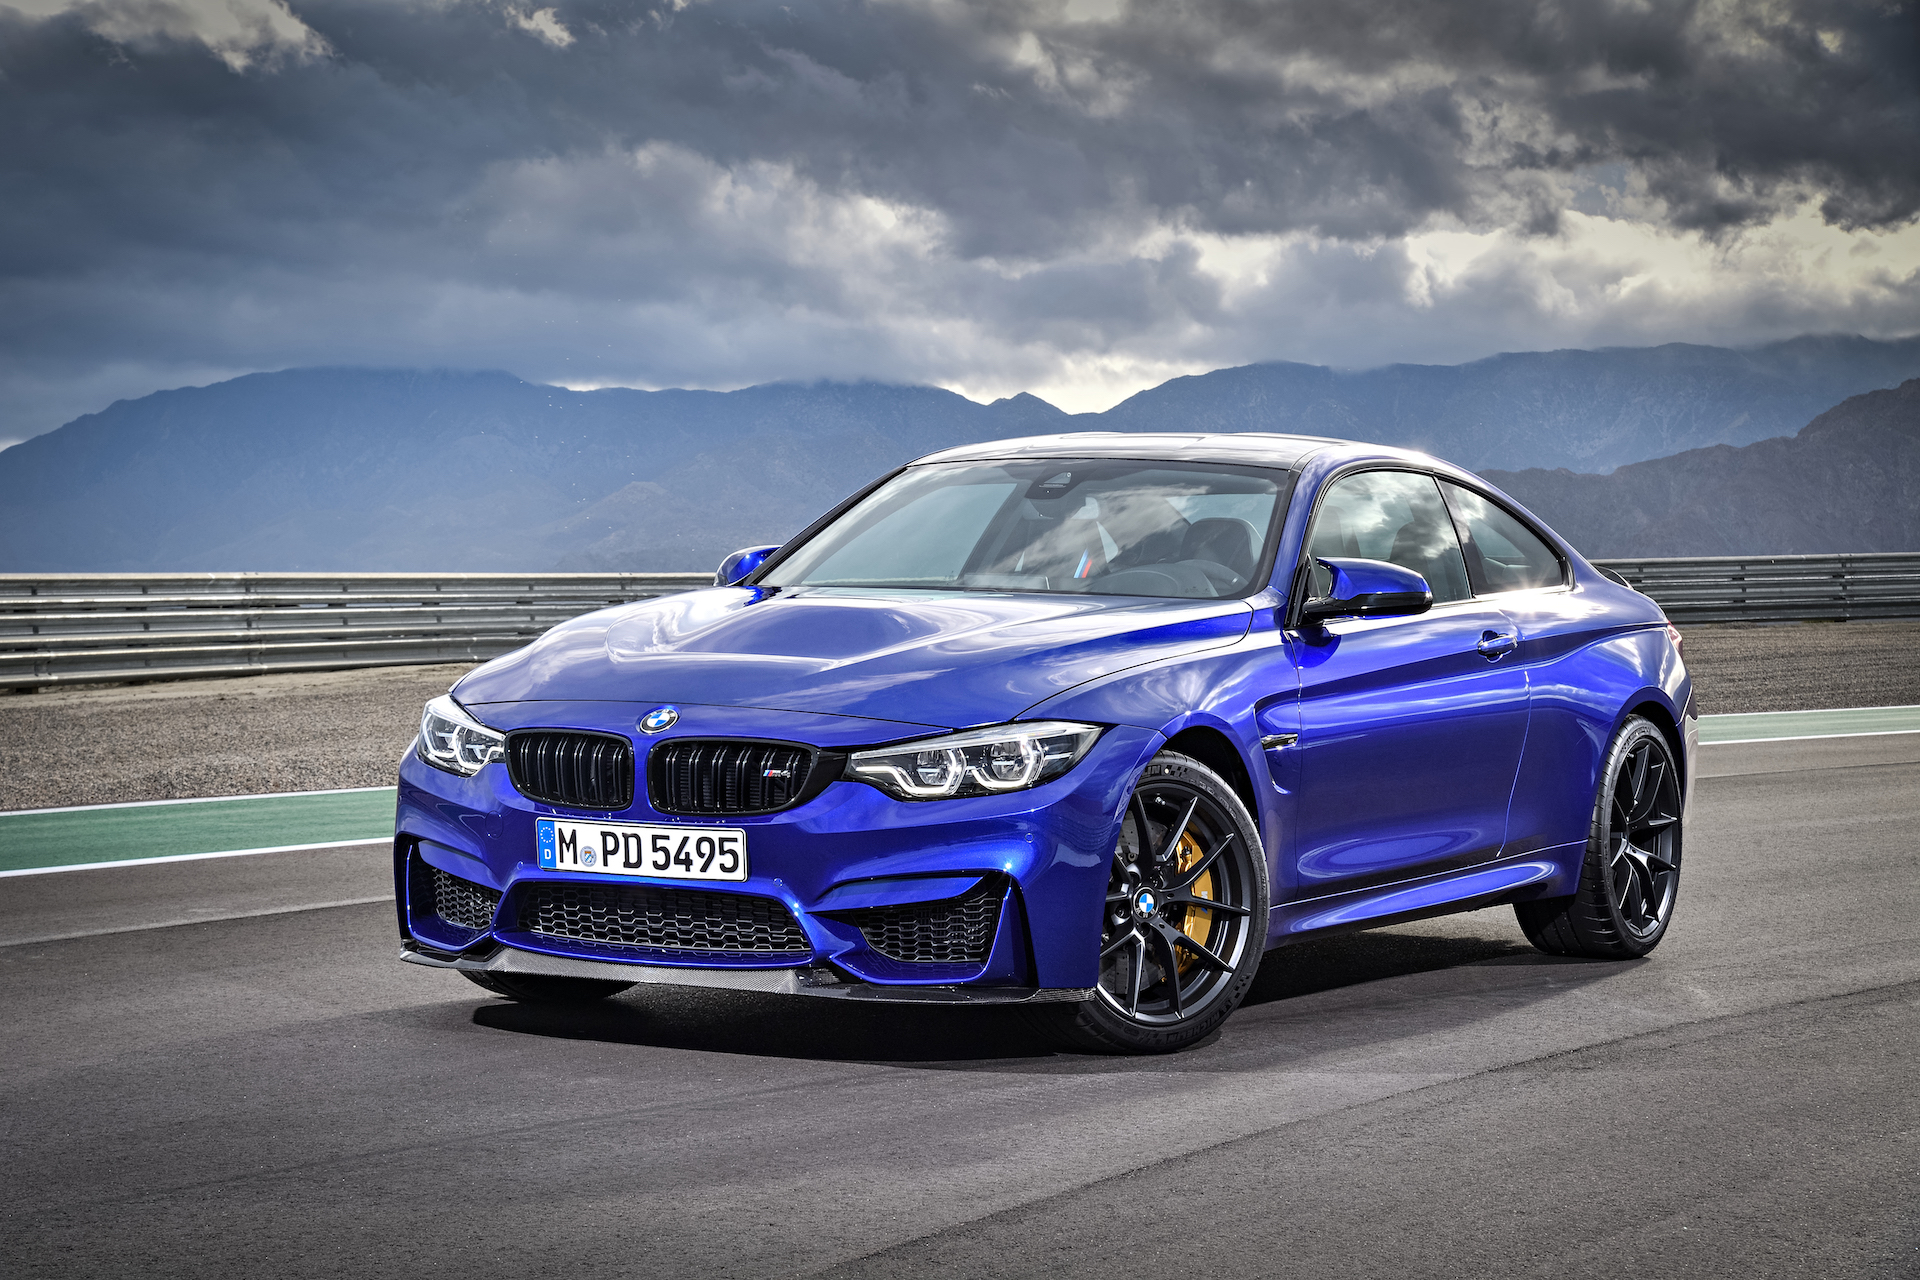 The Bmw M4 Cs Is A Limited Run M4 With A Power Bump The Drive